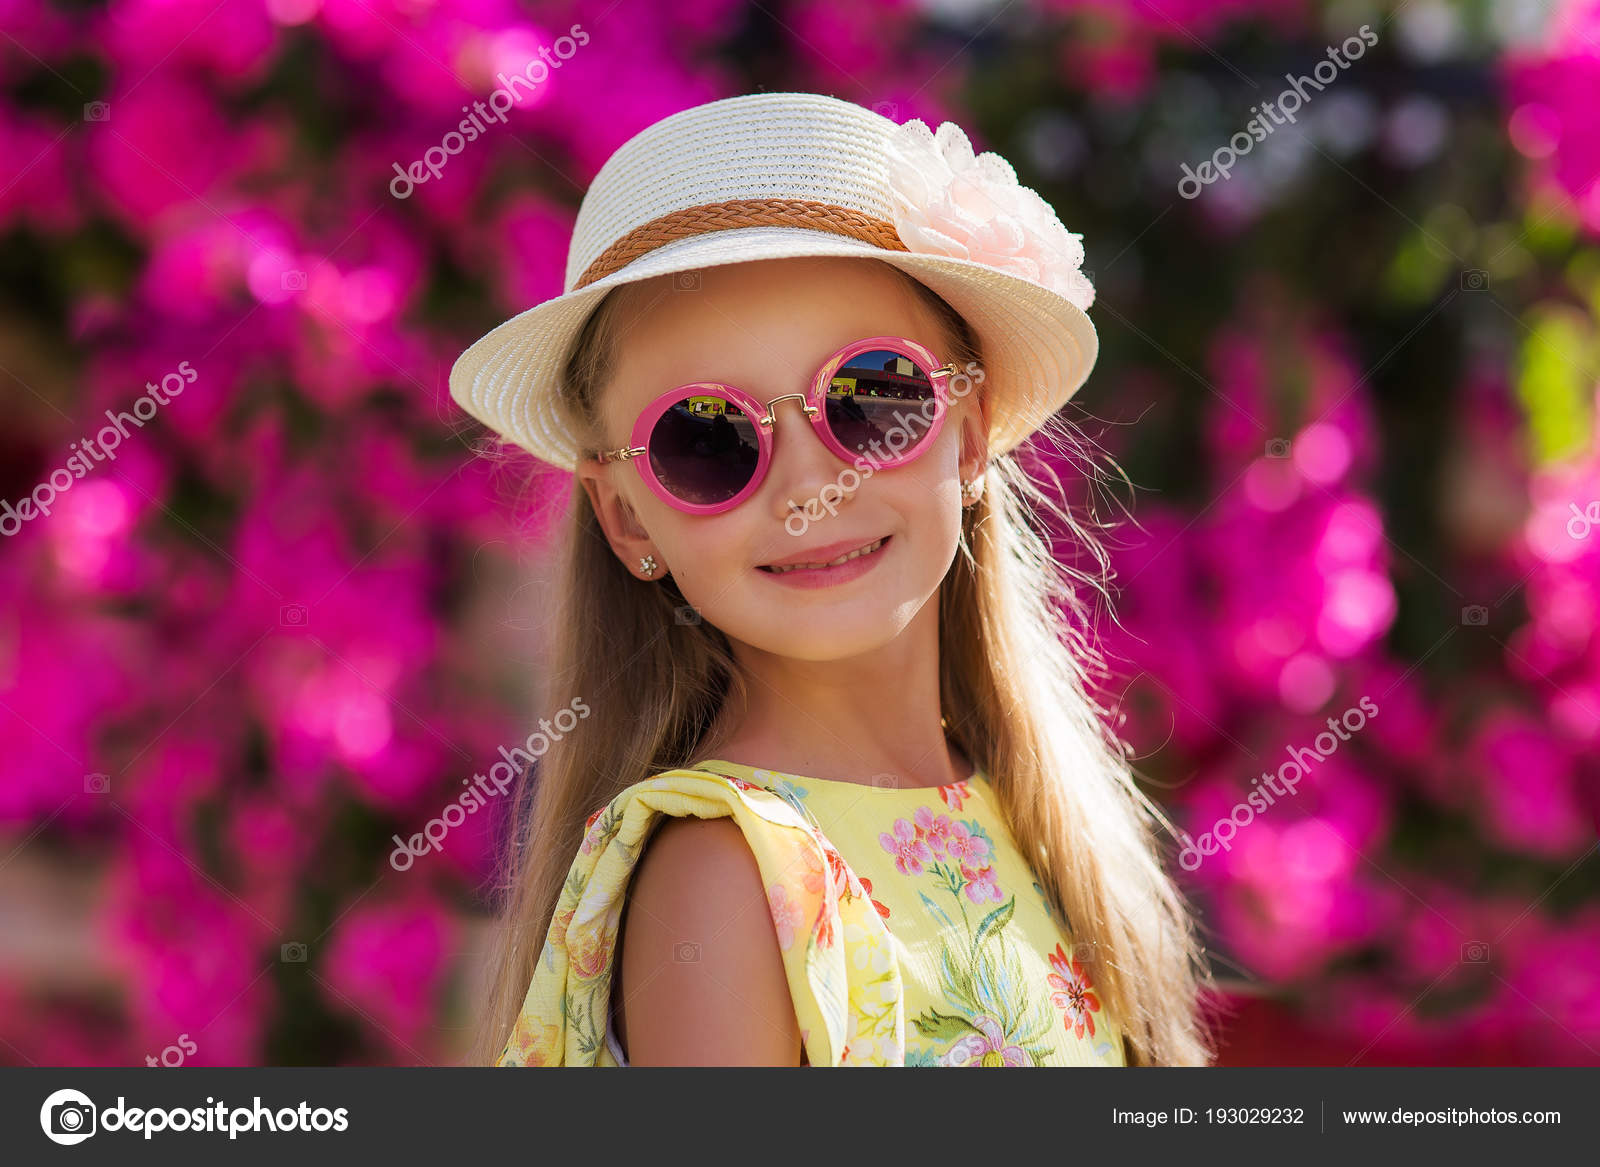 Cute blonde young girl model opinion the